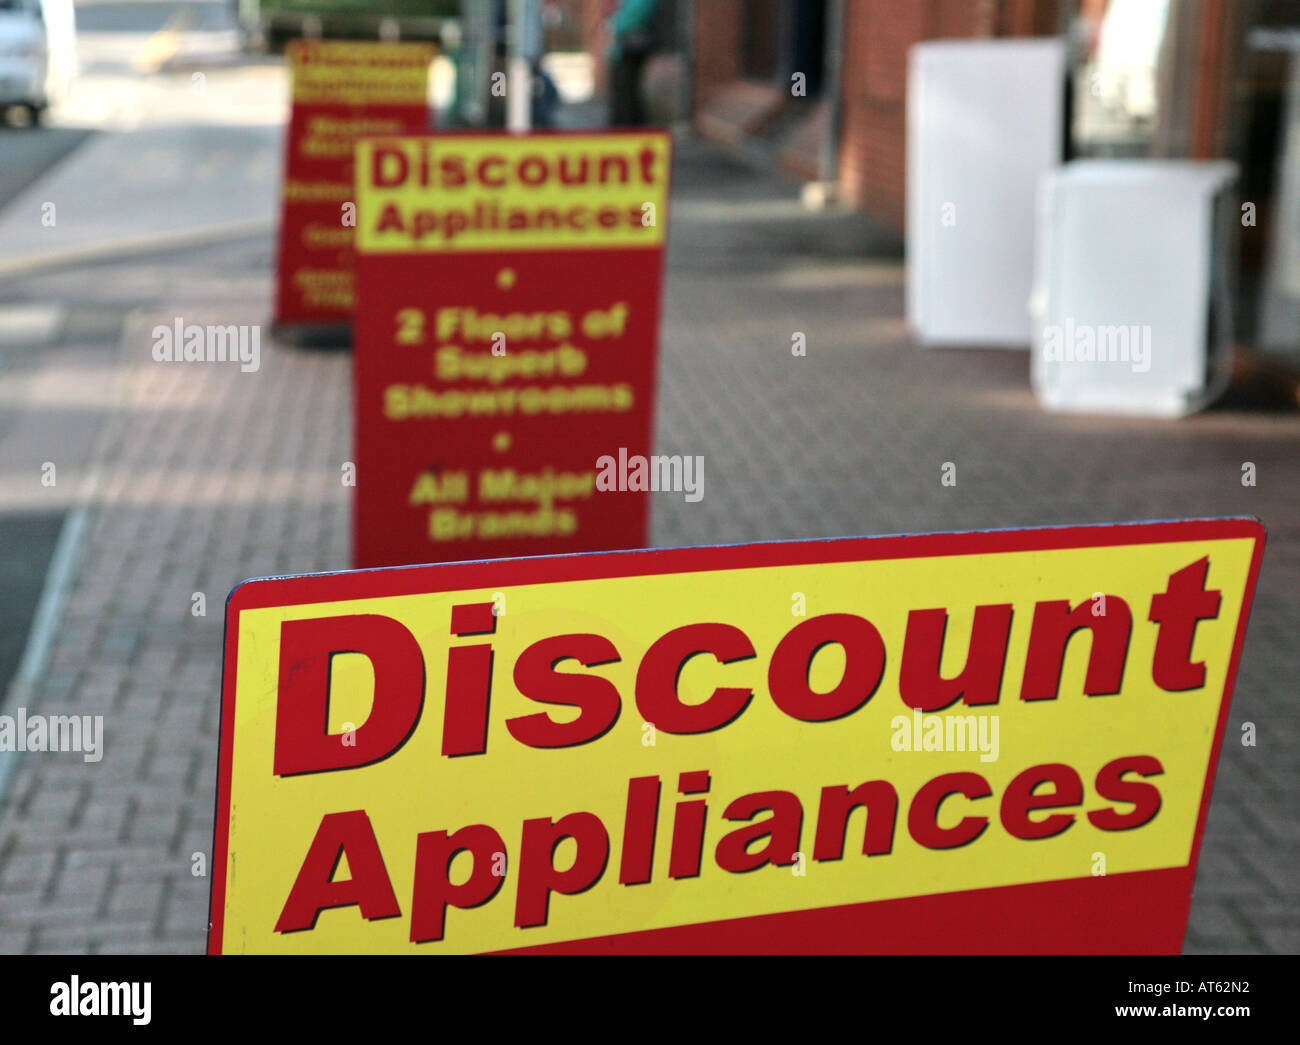 Appliances Discount Discount Appliances Signs Stock Photo Royalty Free Image 9265105